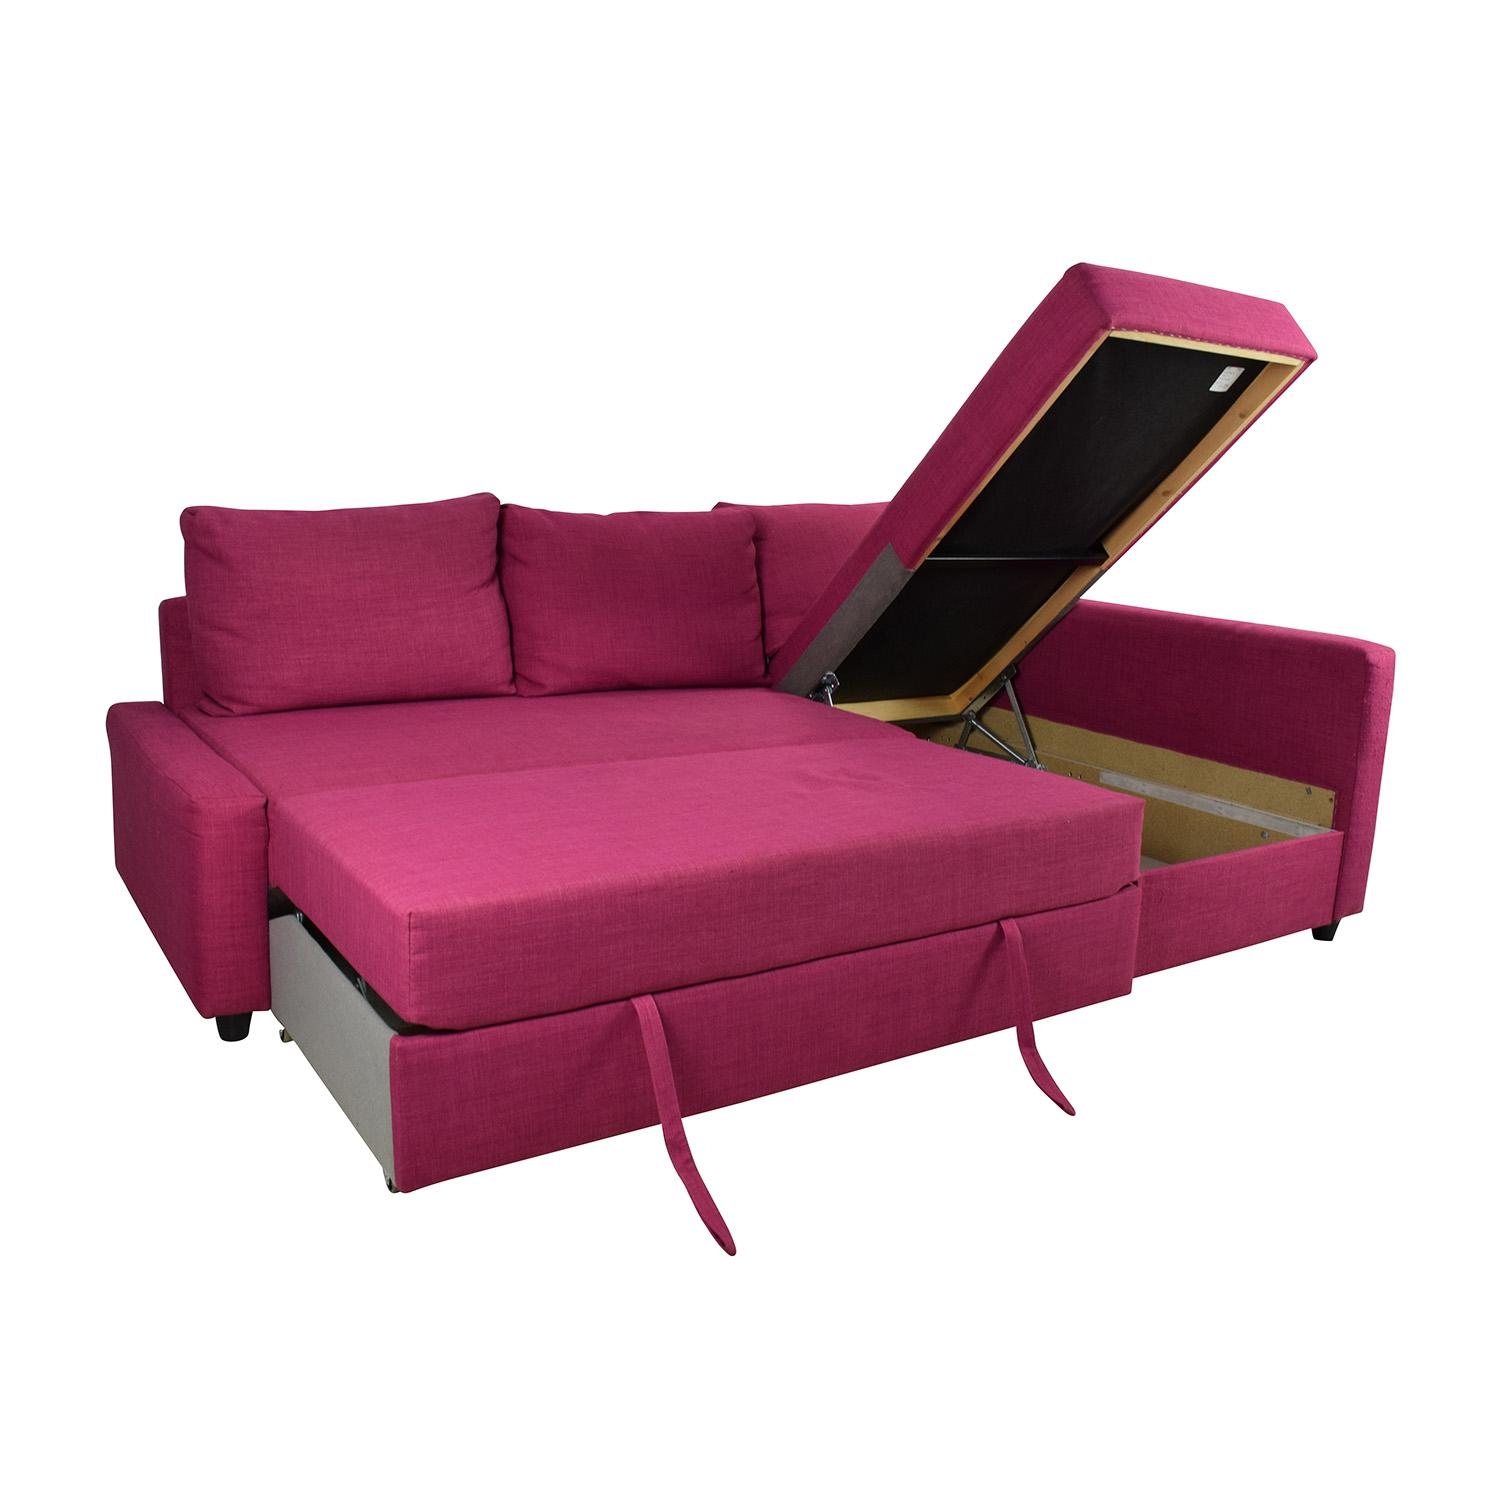 66% Off – Ikea Ikea Friheten Pink Sleeper Sofa / Sofas With Regard To Ikea Sleeper Sofa Sectional (Image 2 of 20)